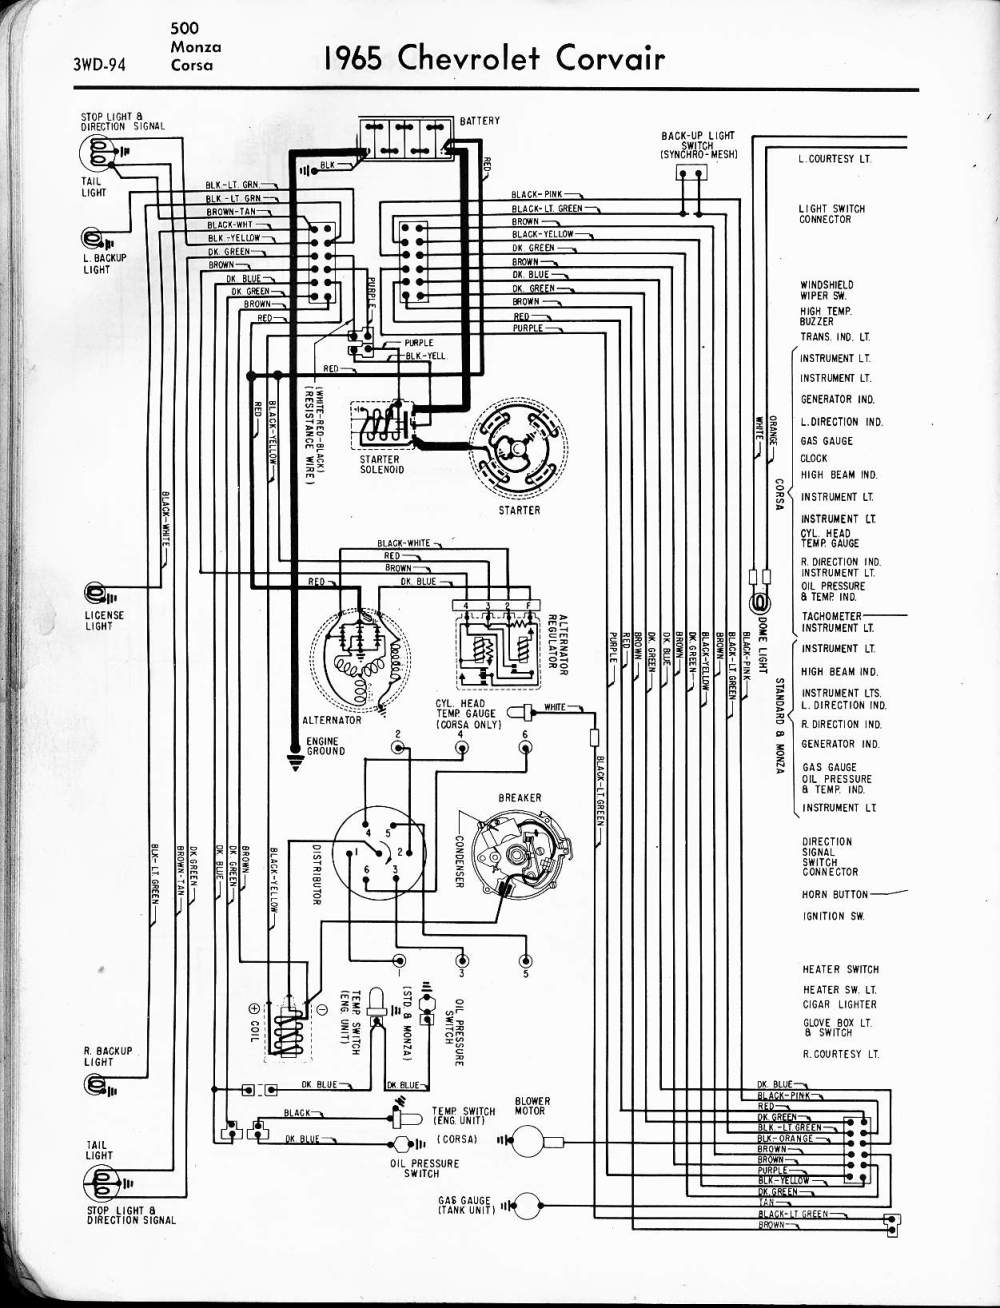 medium resolution of 1965 corvair wiring harness wiring diagram pictures u2022 rh mapavick co uk 1964 impala tail light